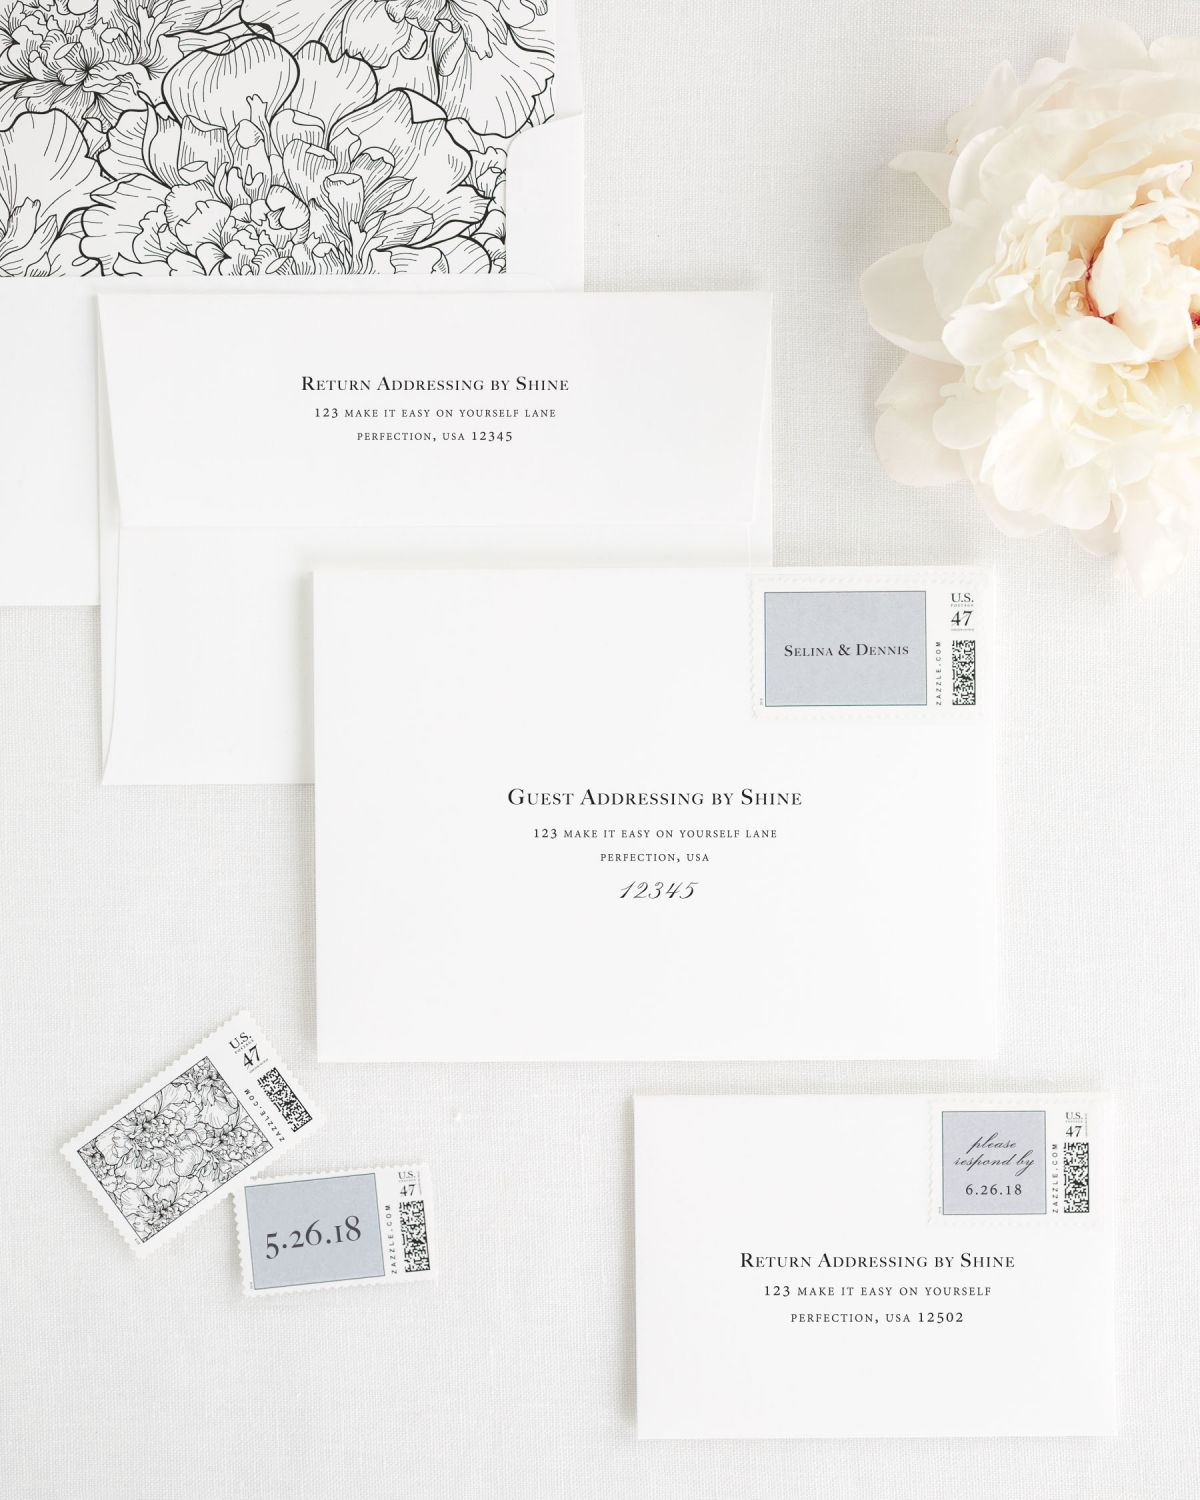 Wedding Invitations Envelopes with Guest Addressing and Personalized Stamps